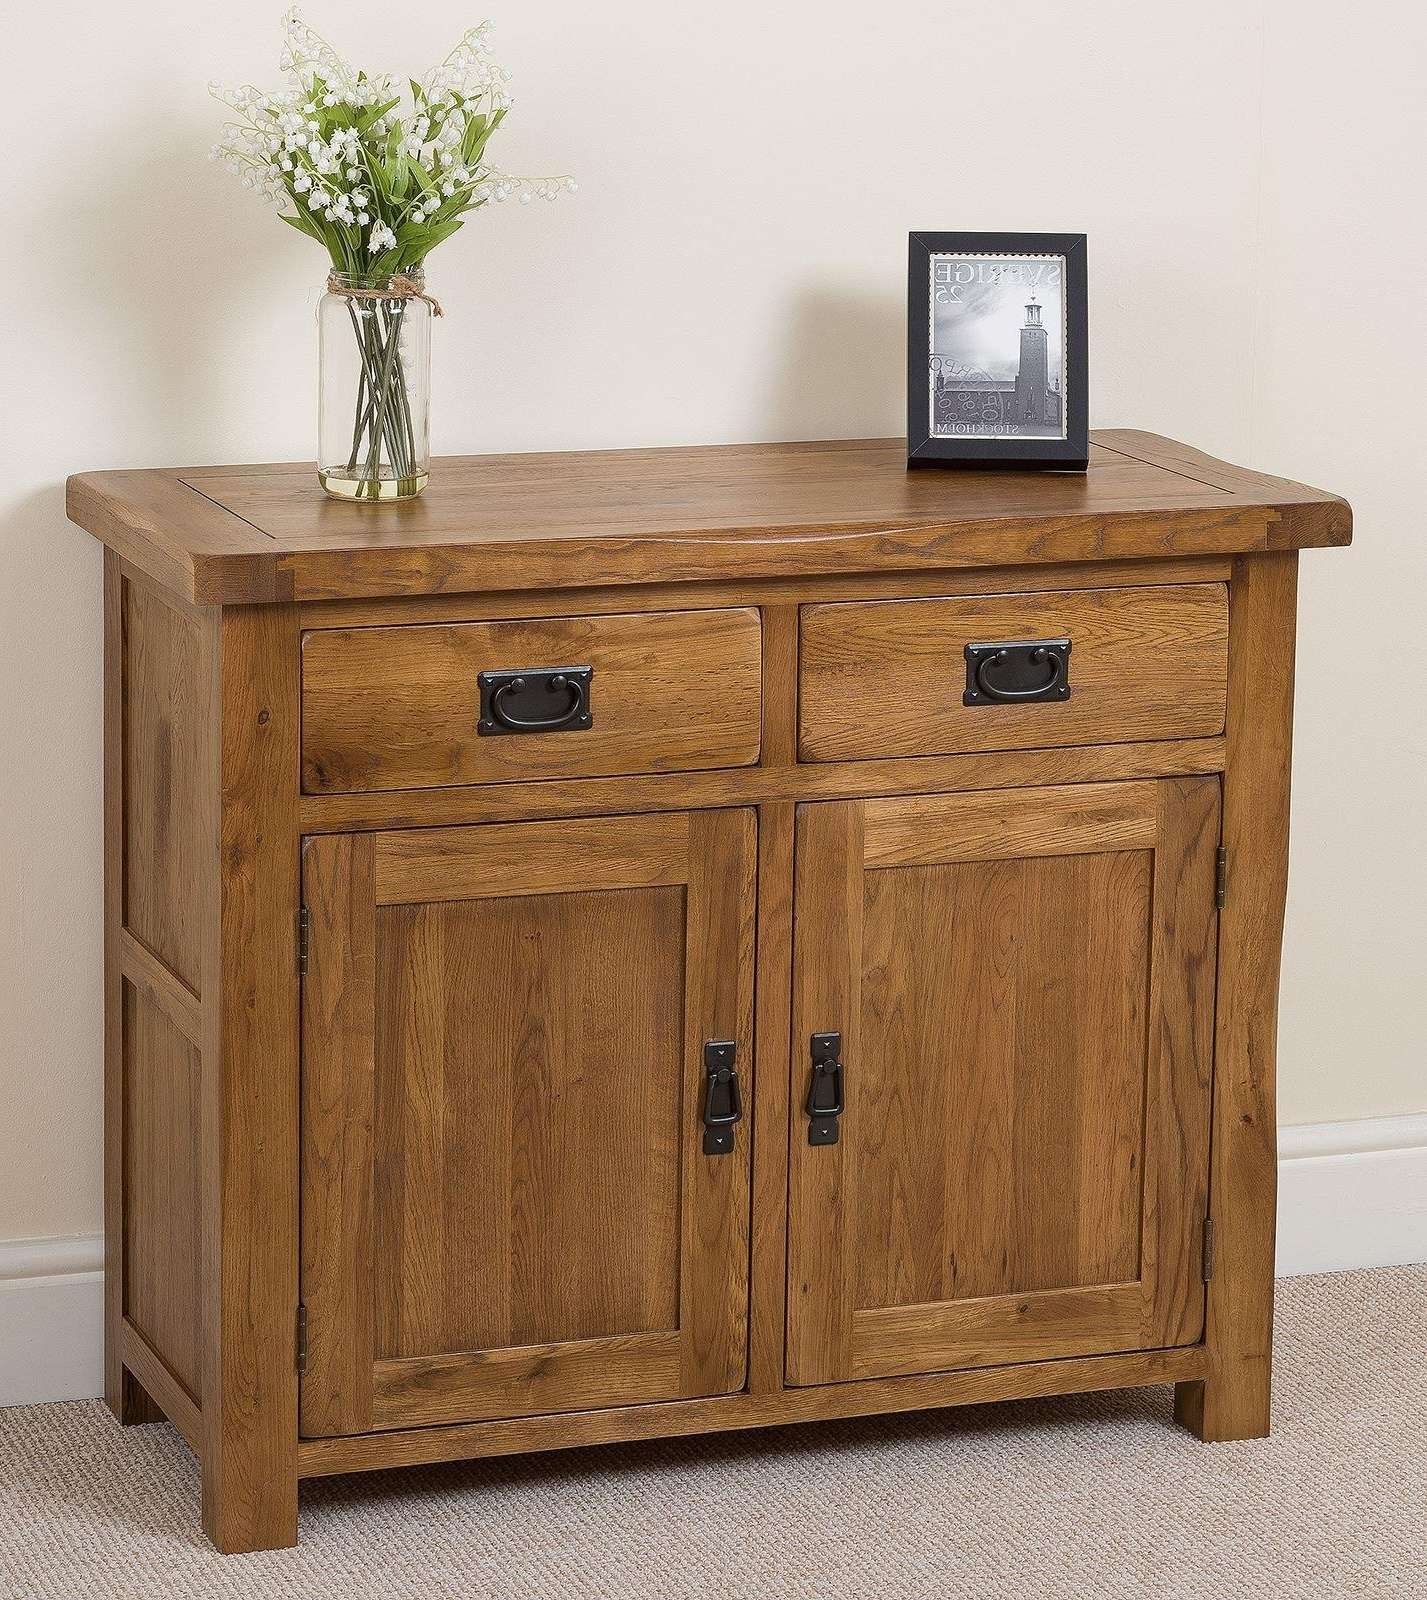 Cotswold Rustic Small Oak Sideboard | Modern Furniture Direct For Rustic Sideboards (View 5 of 20)